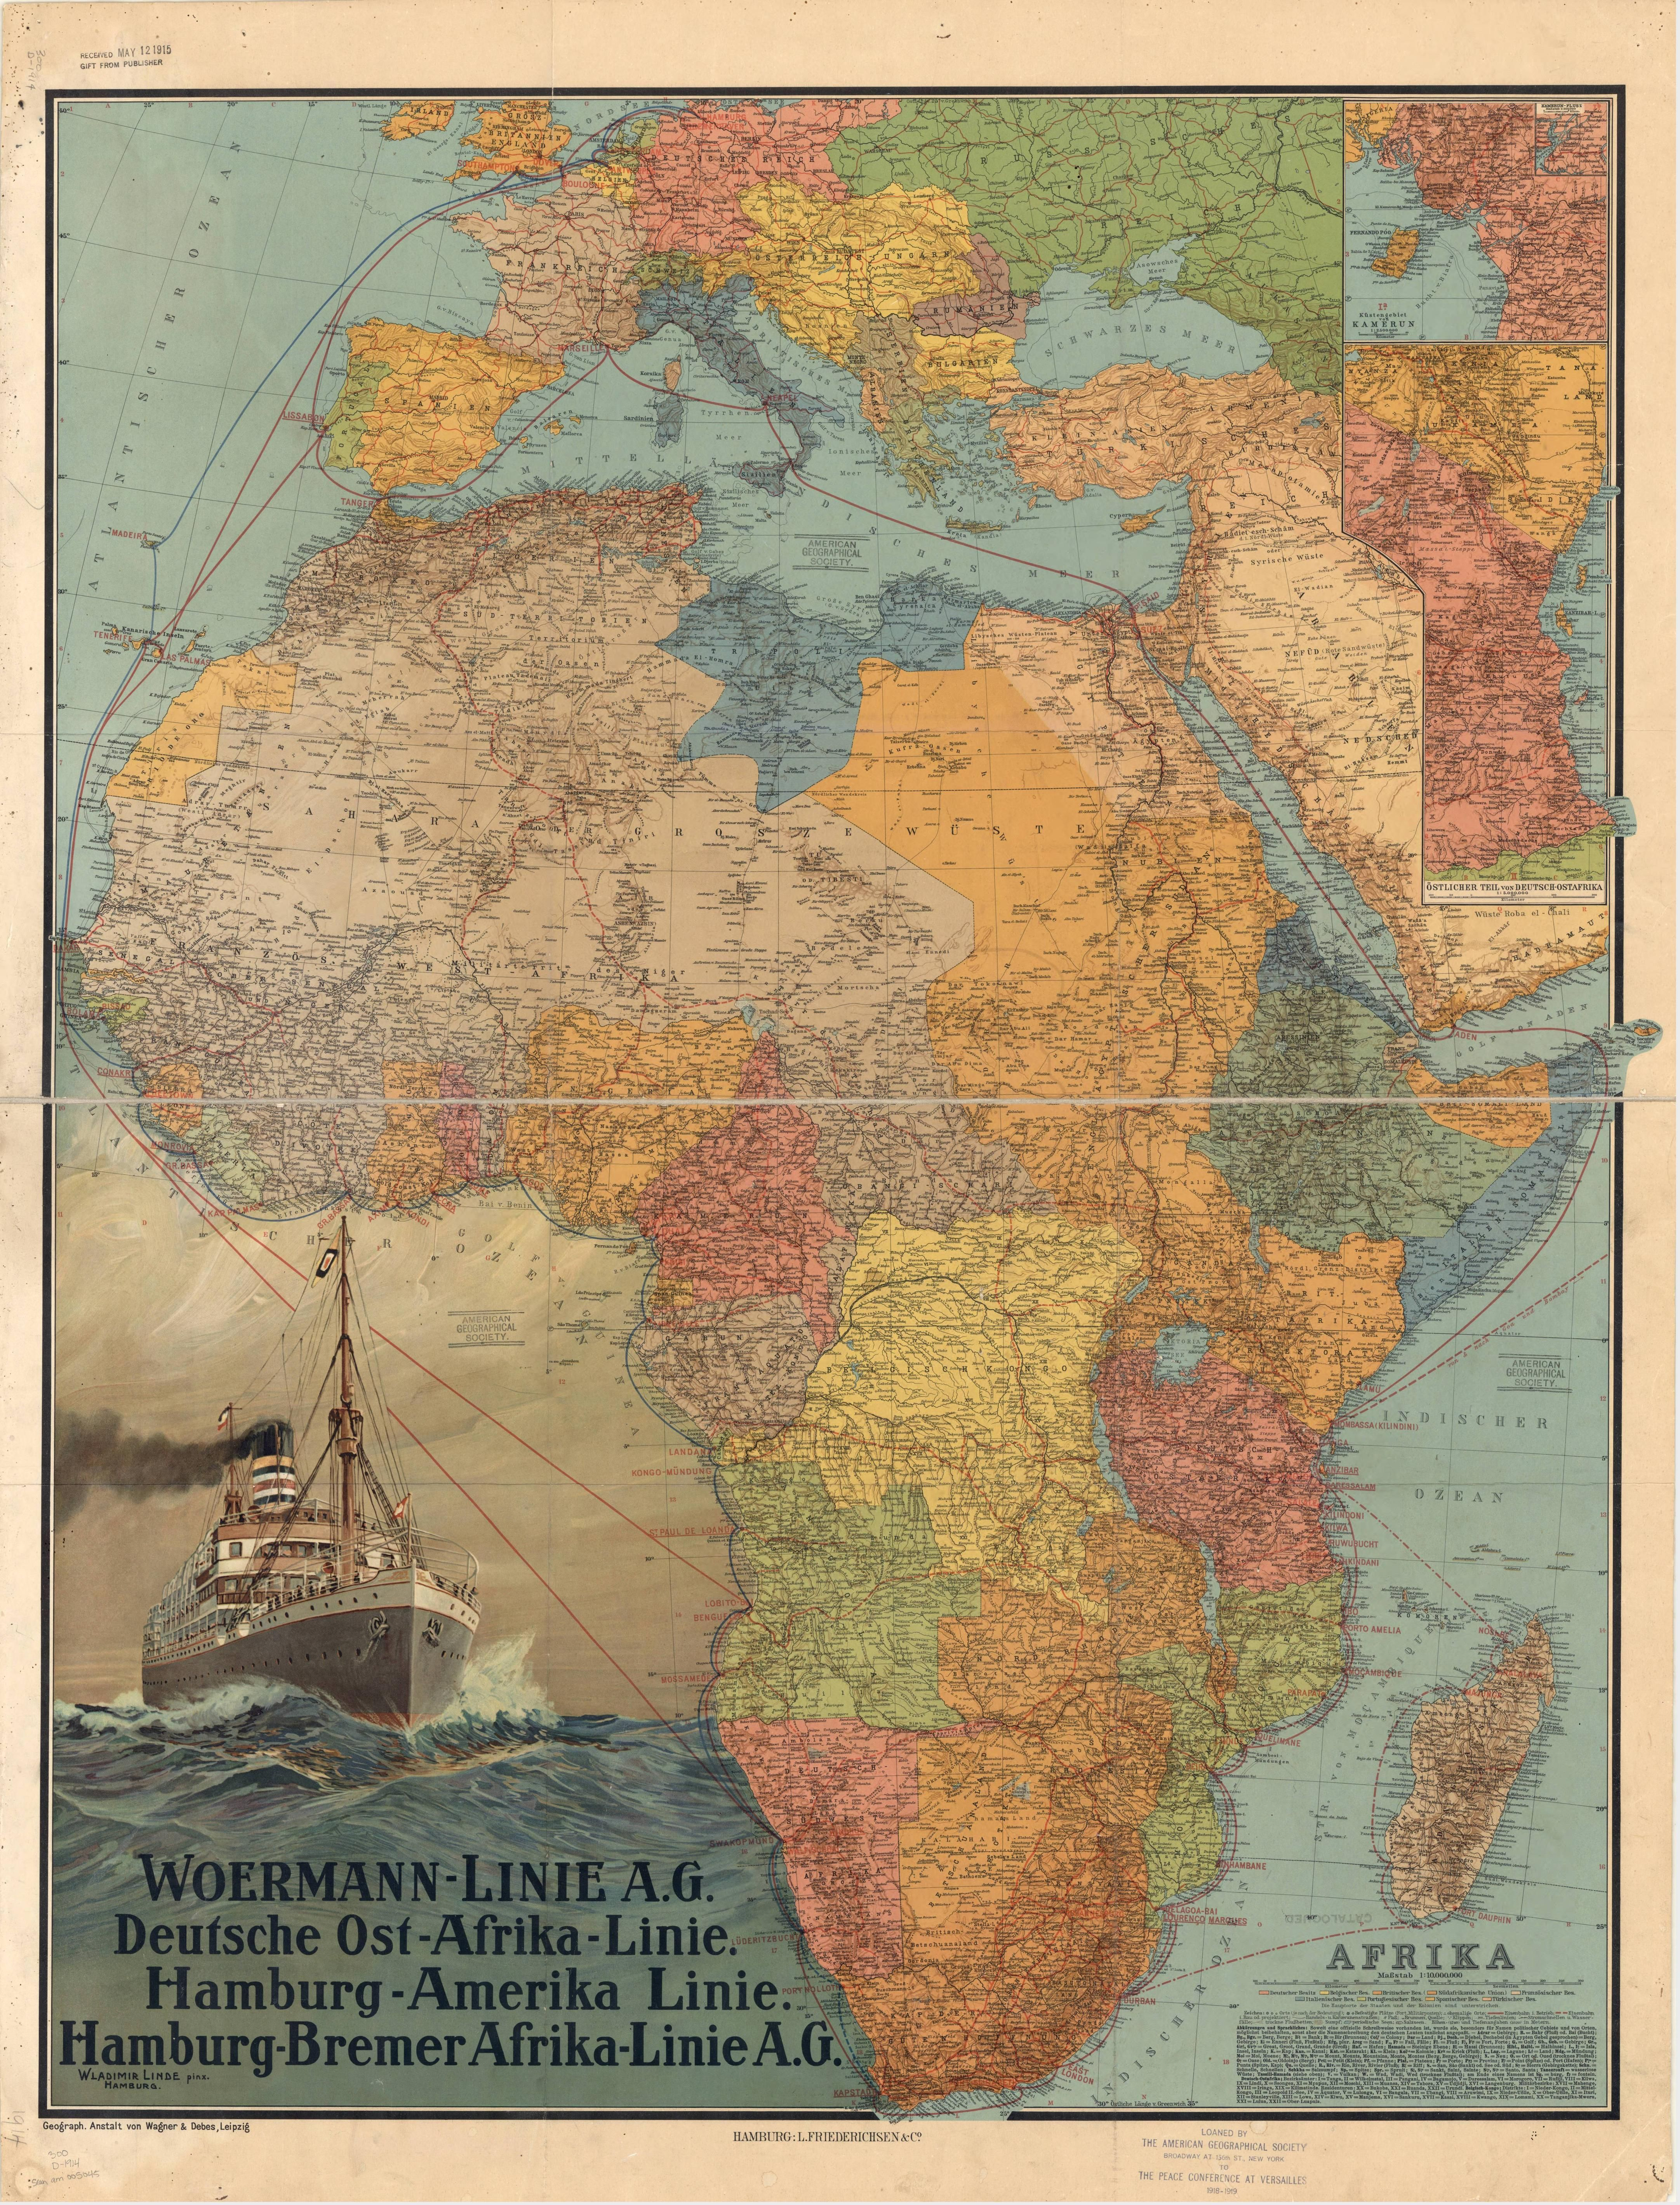 Beautifully colored map of Africa in 1914 Published in Germany by